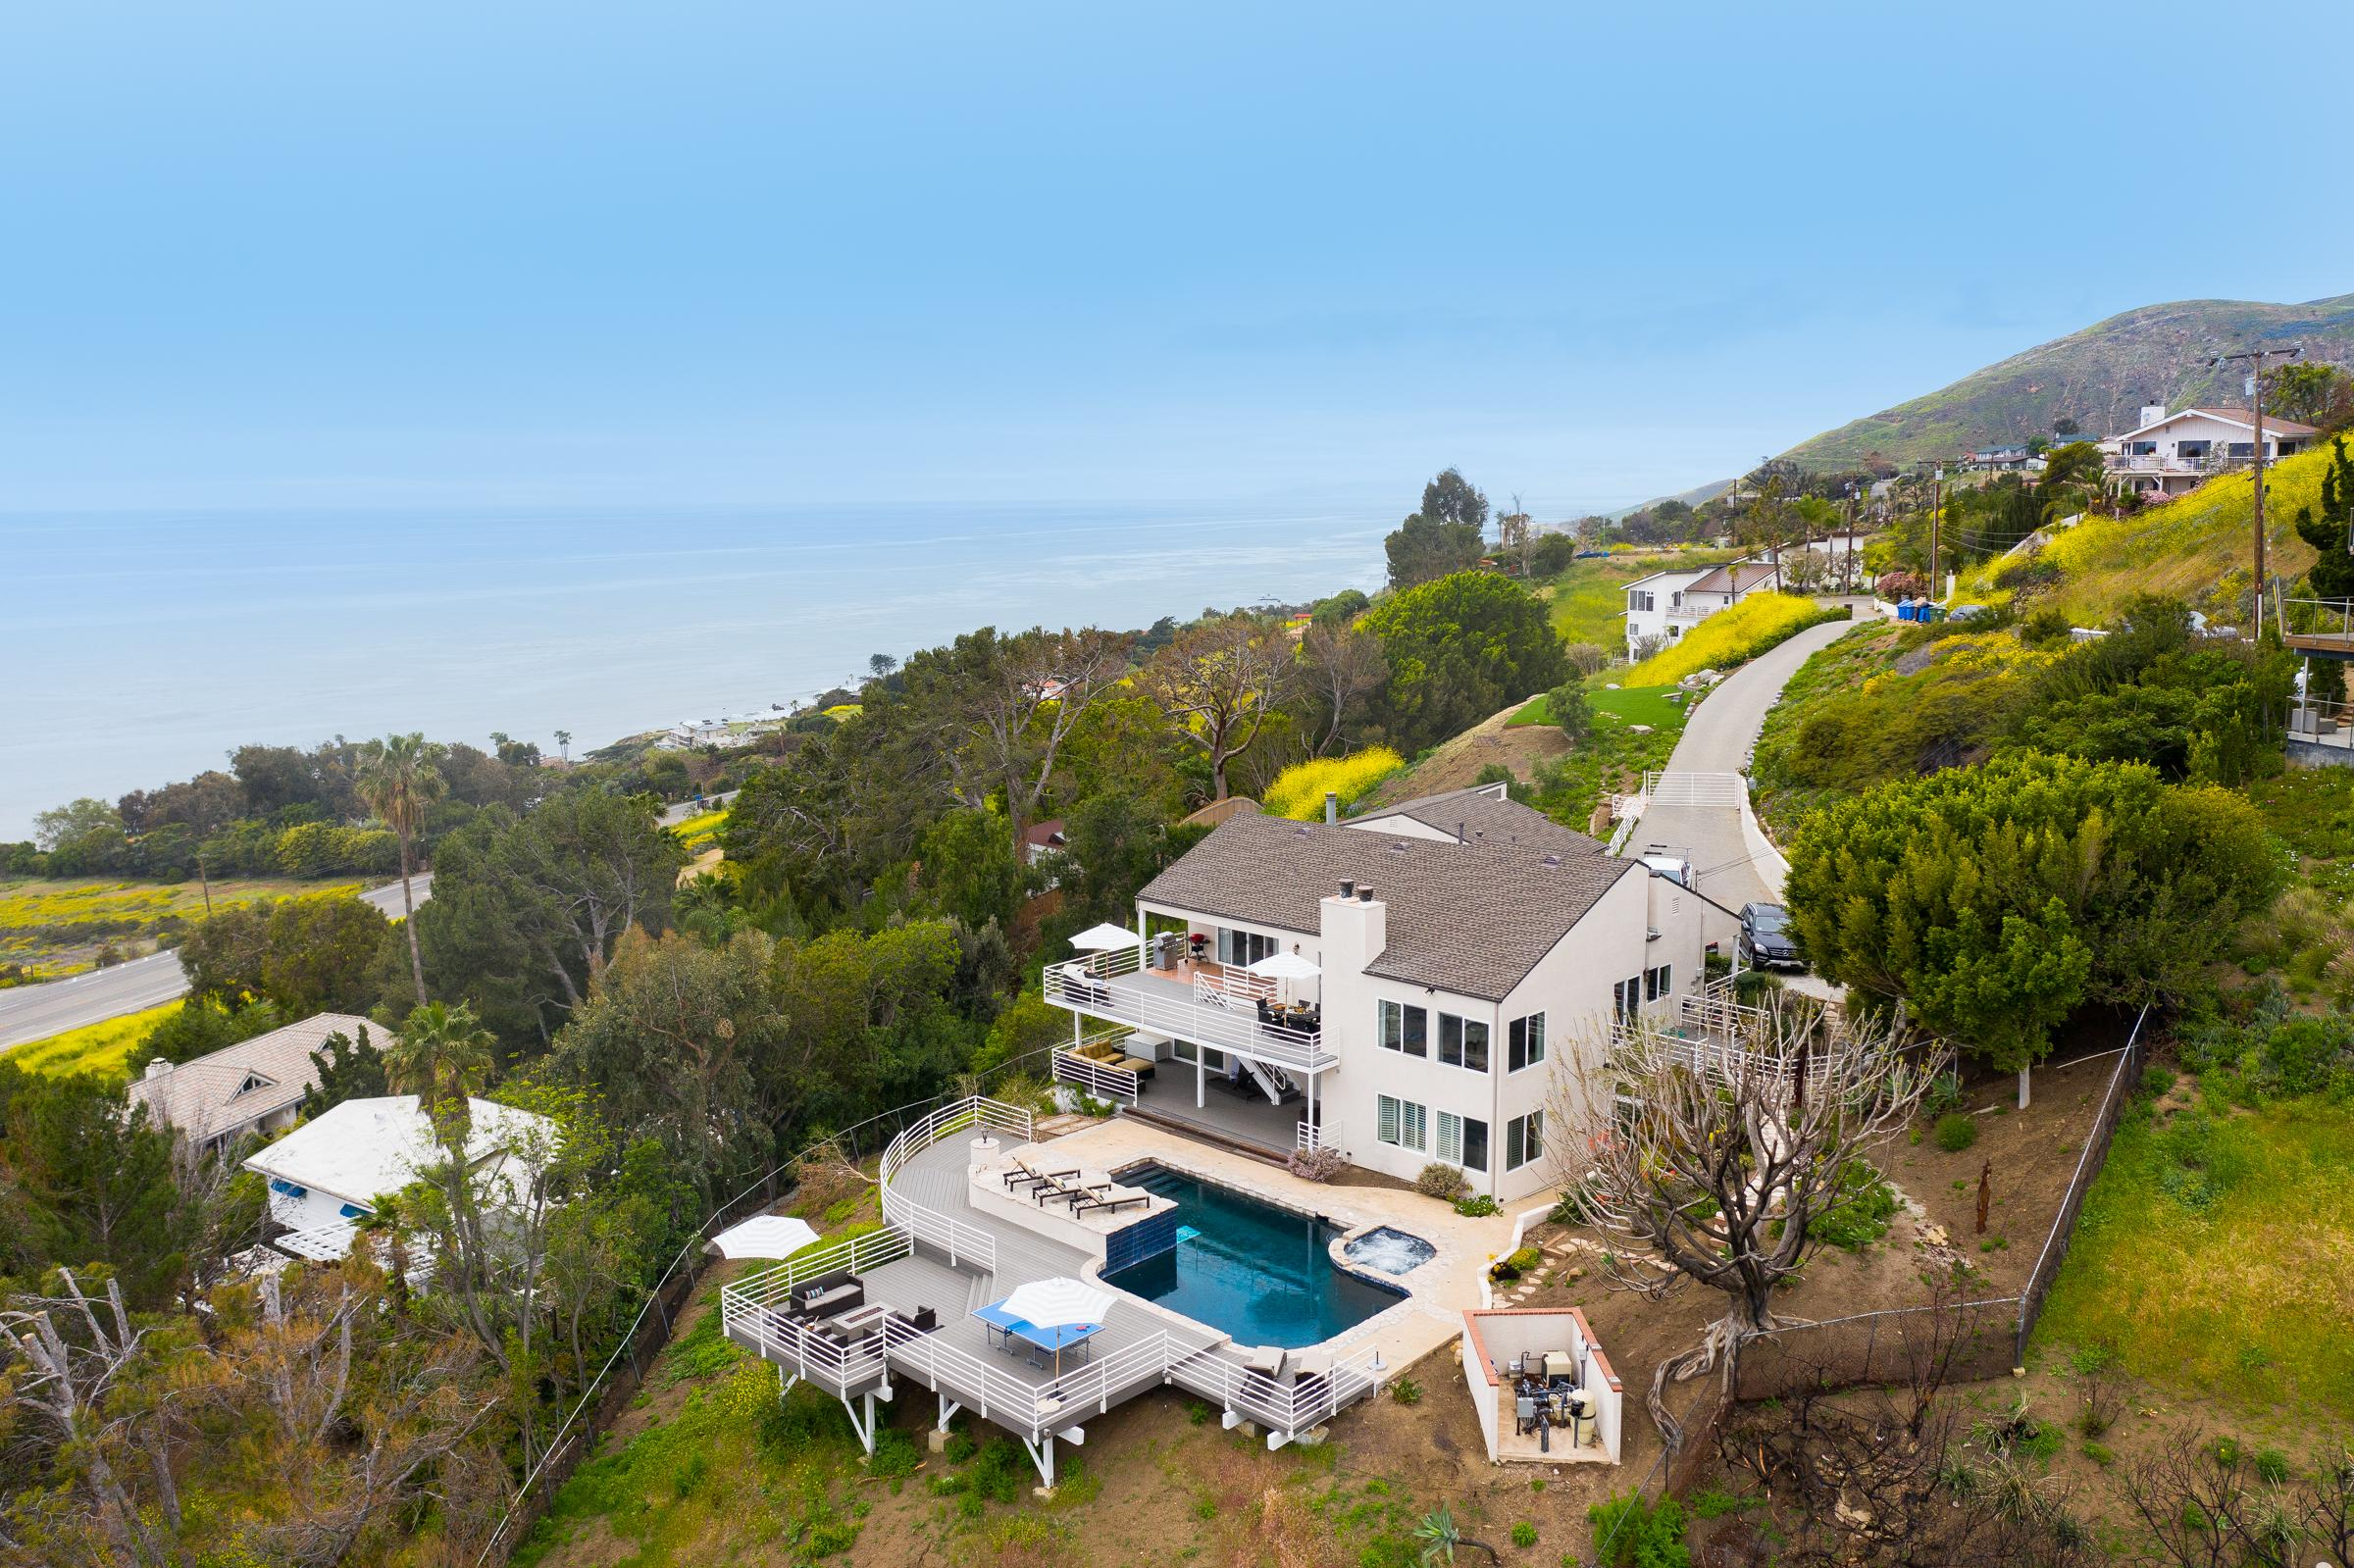 Sea Star | Gold Medal Olympian's Malibu Estate | Pool, Spa & Views